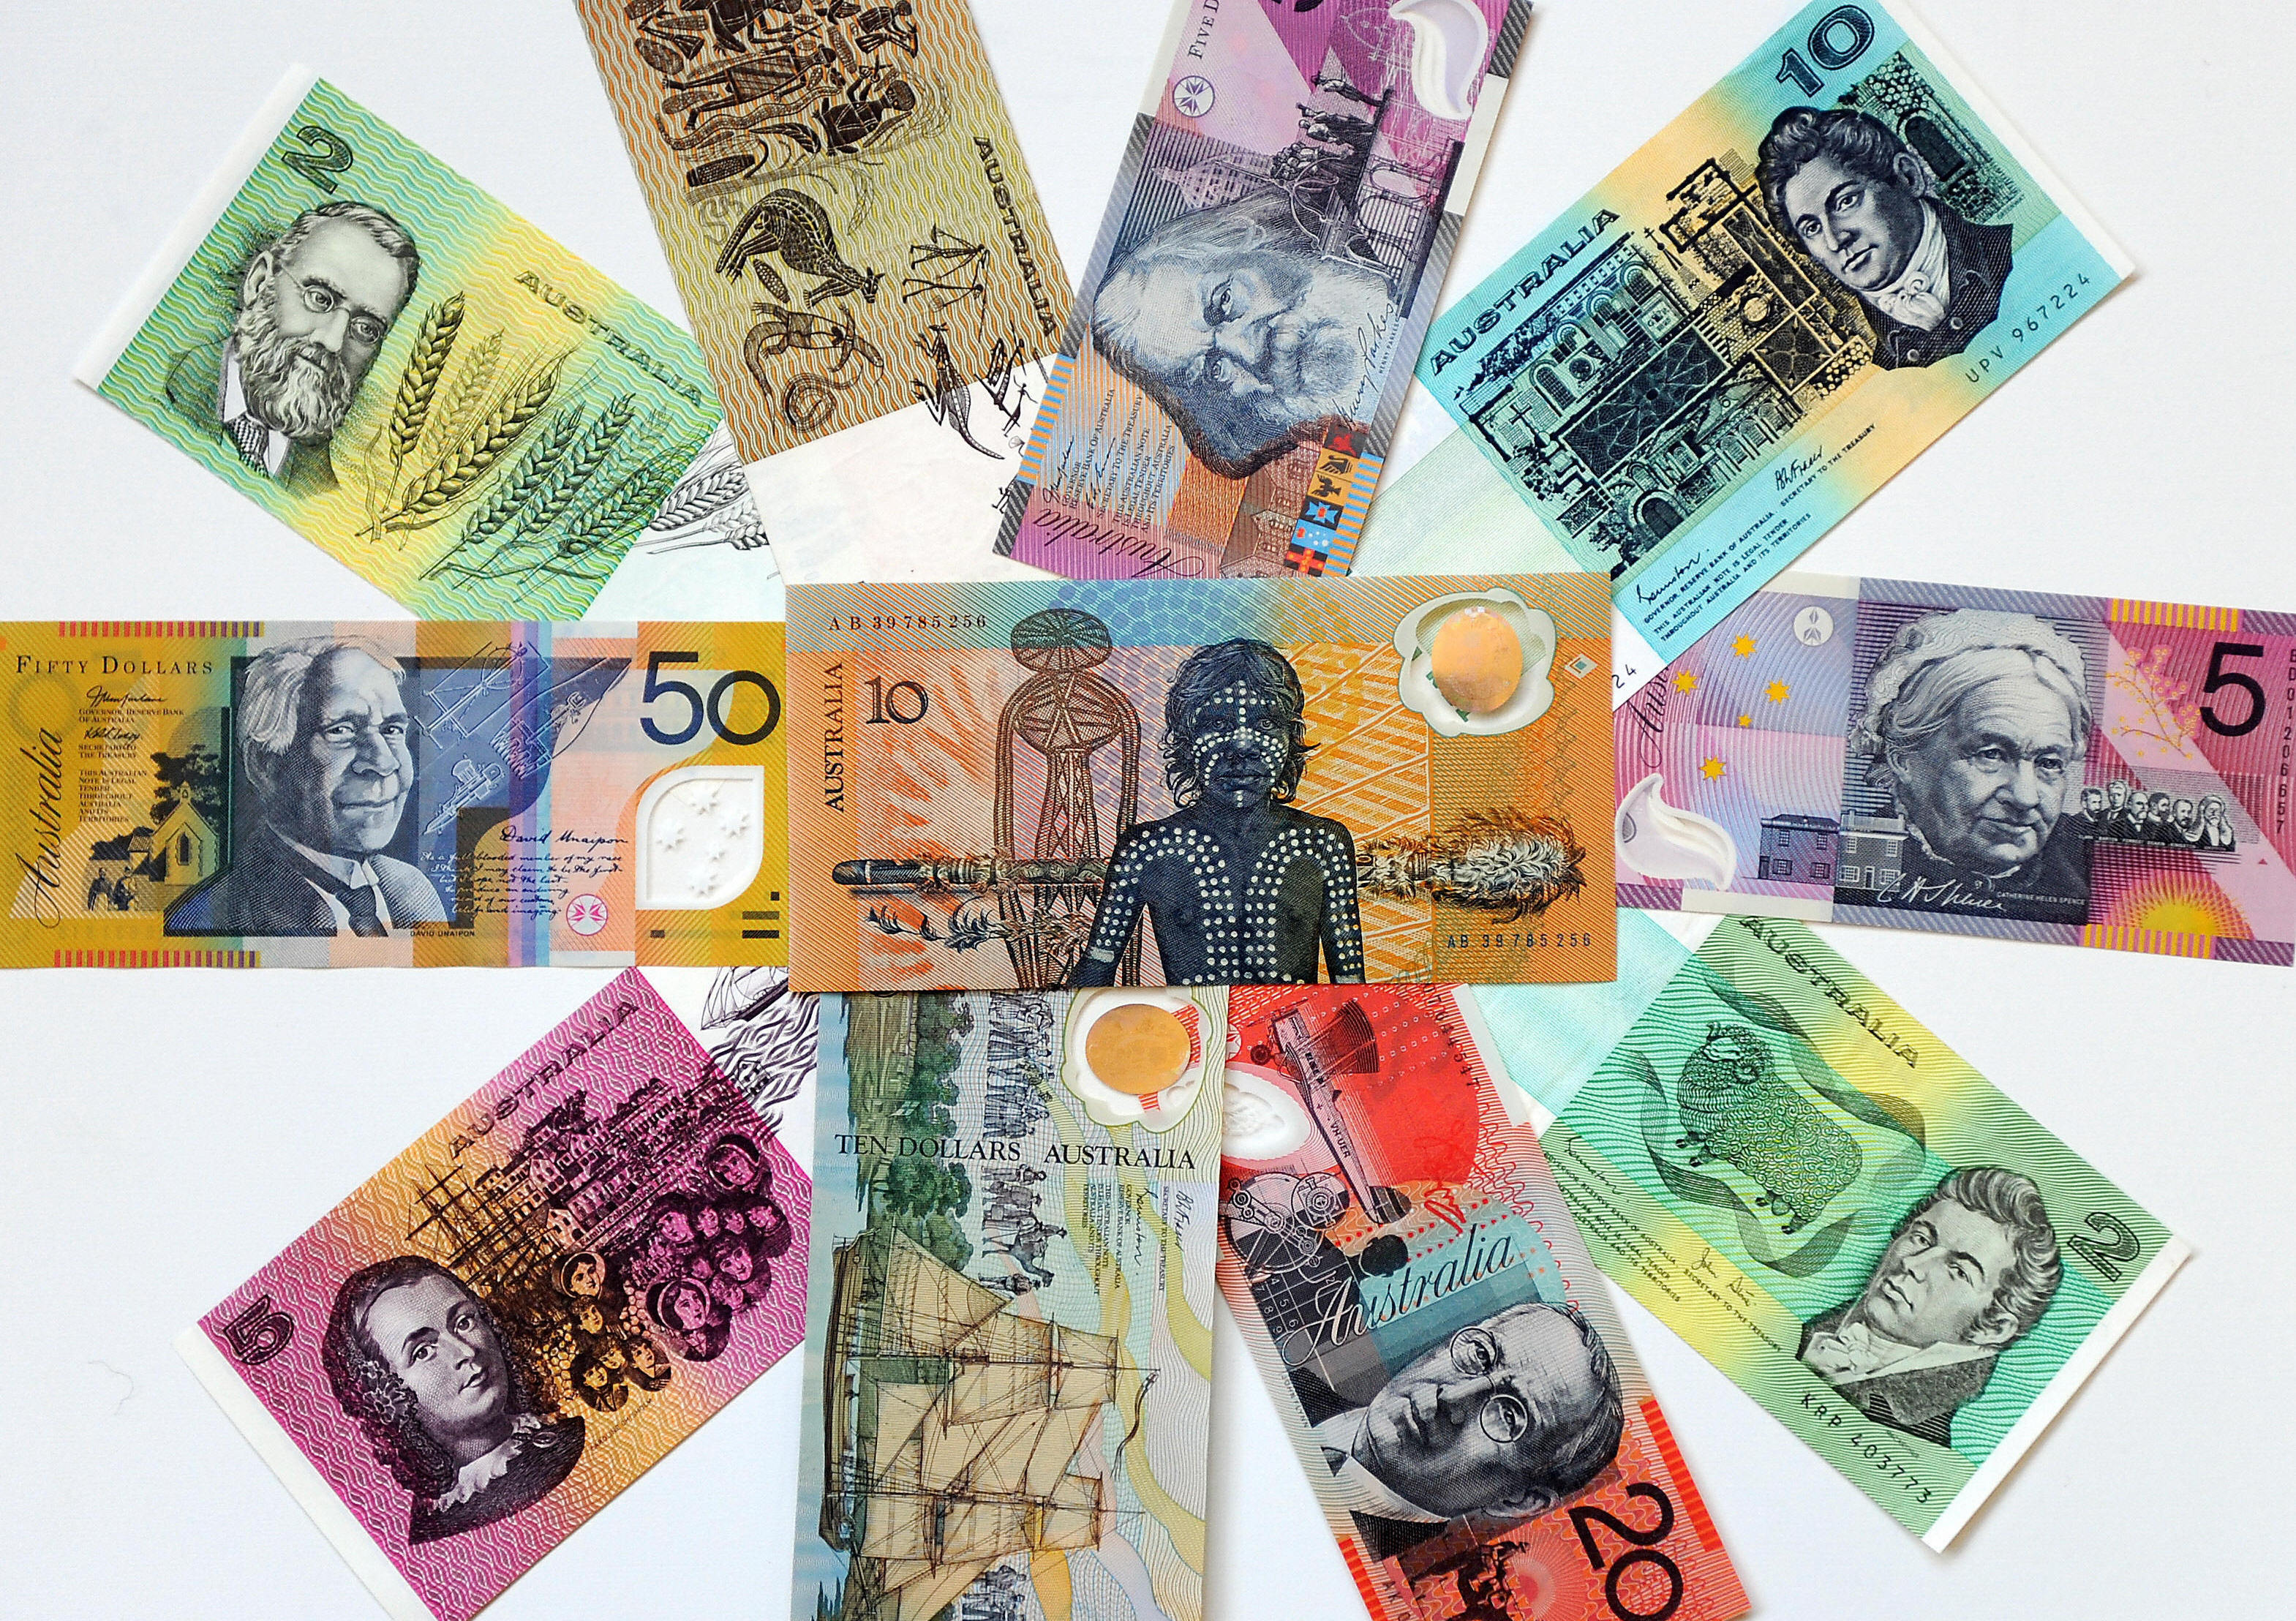 aud-currency-banknotes